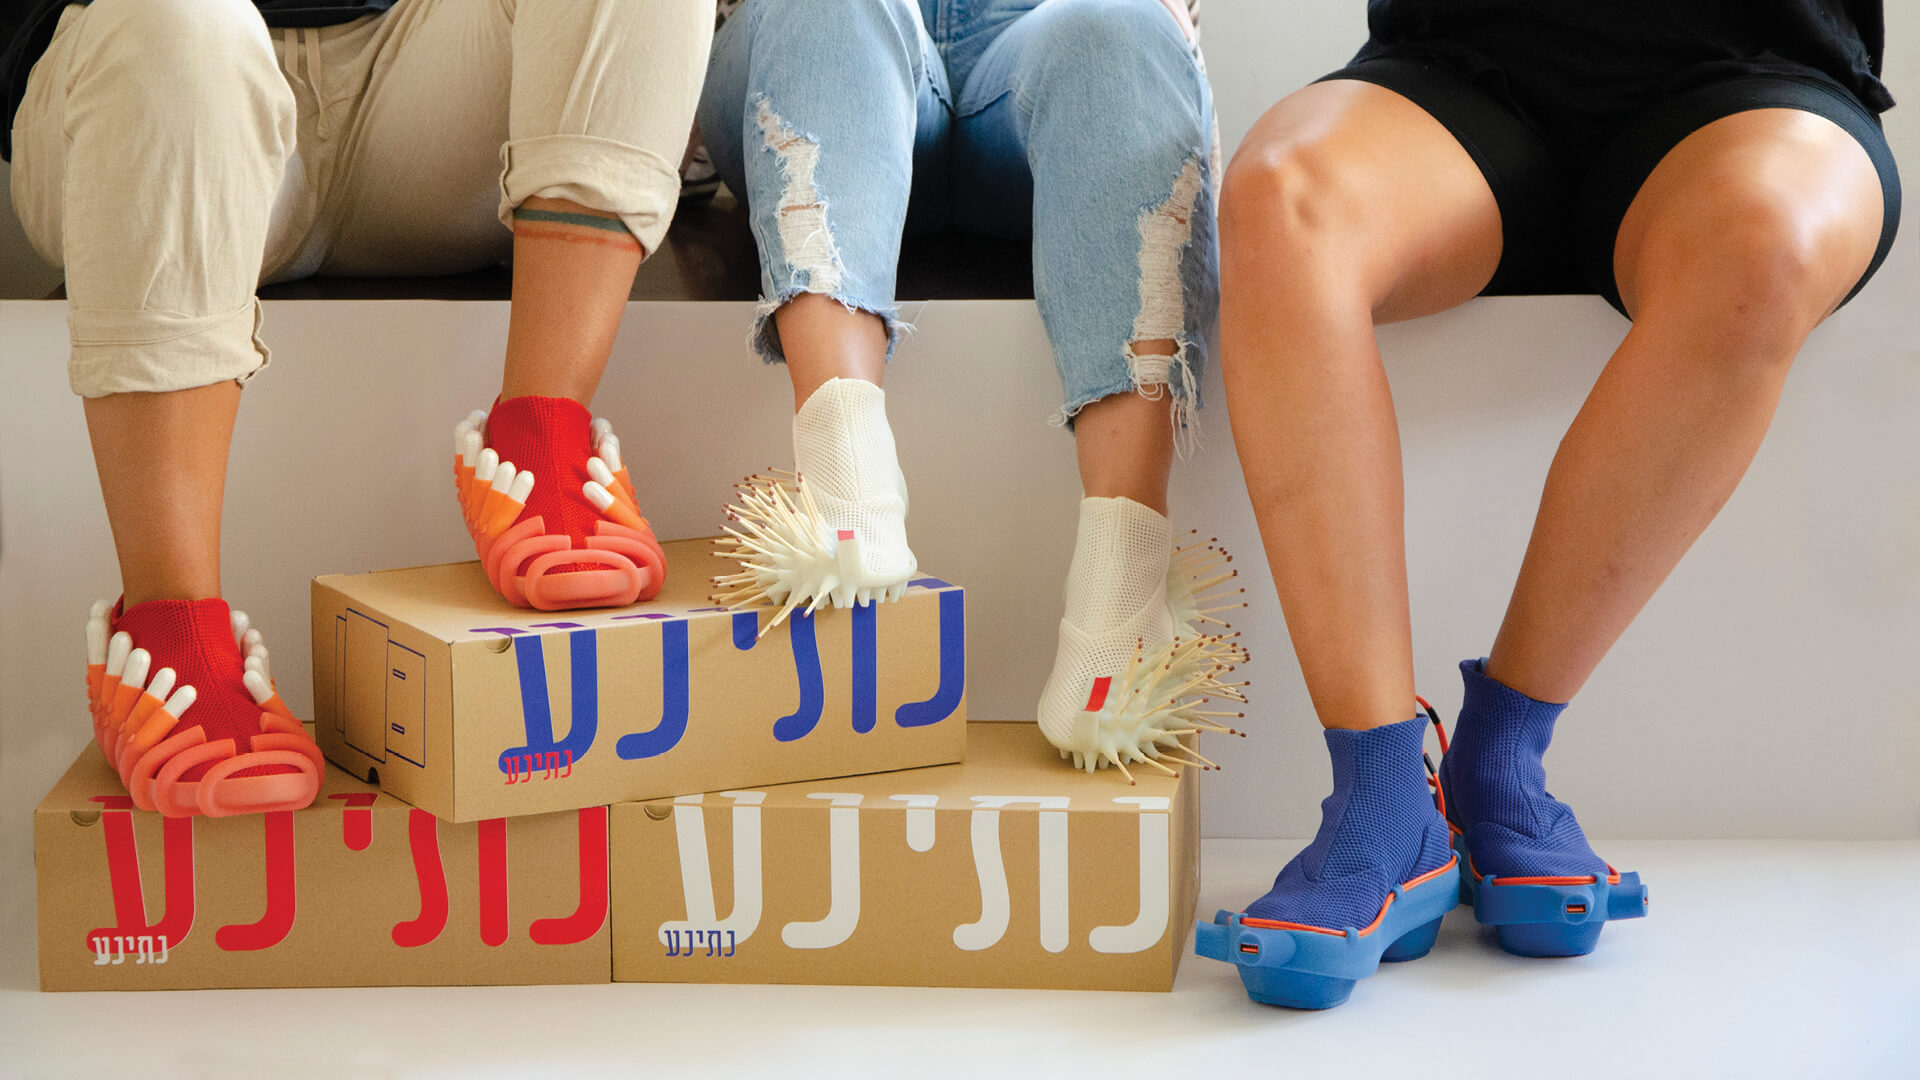 The aim of the Netina collection is to encourage social interaction | Netina shoes collection by Netha Goldberg| STIRworld